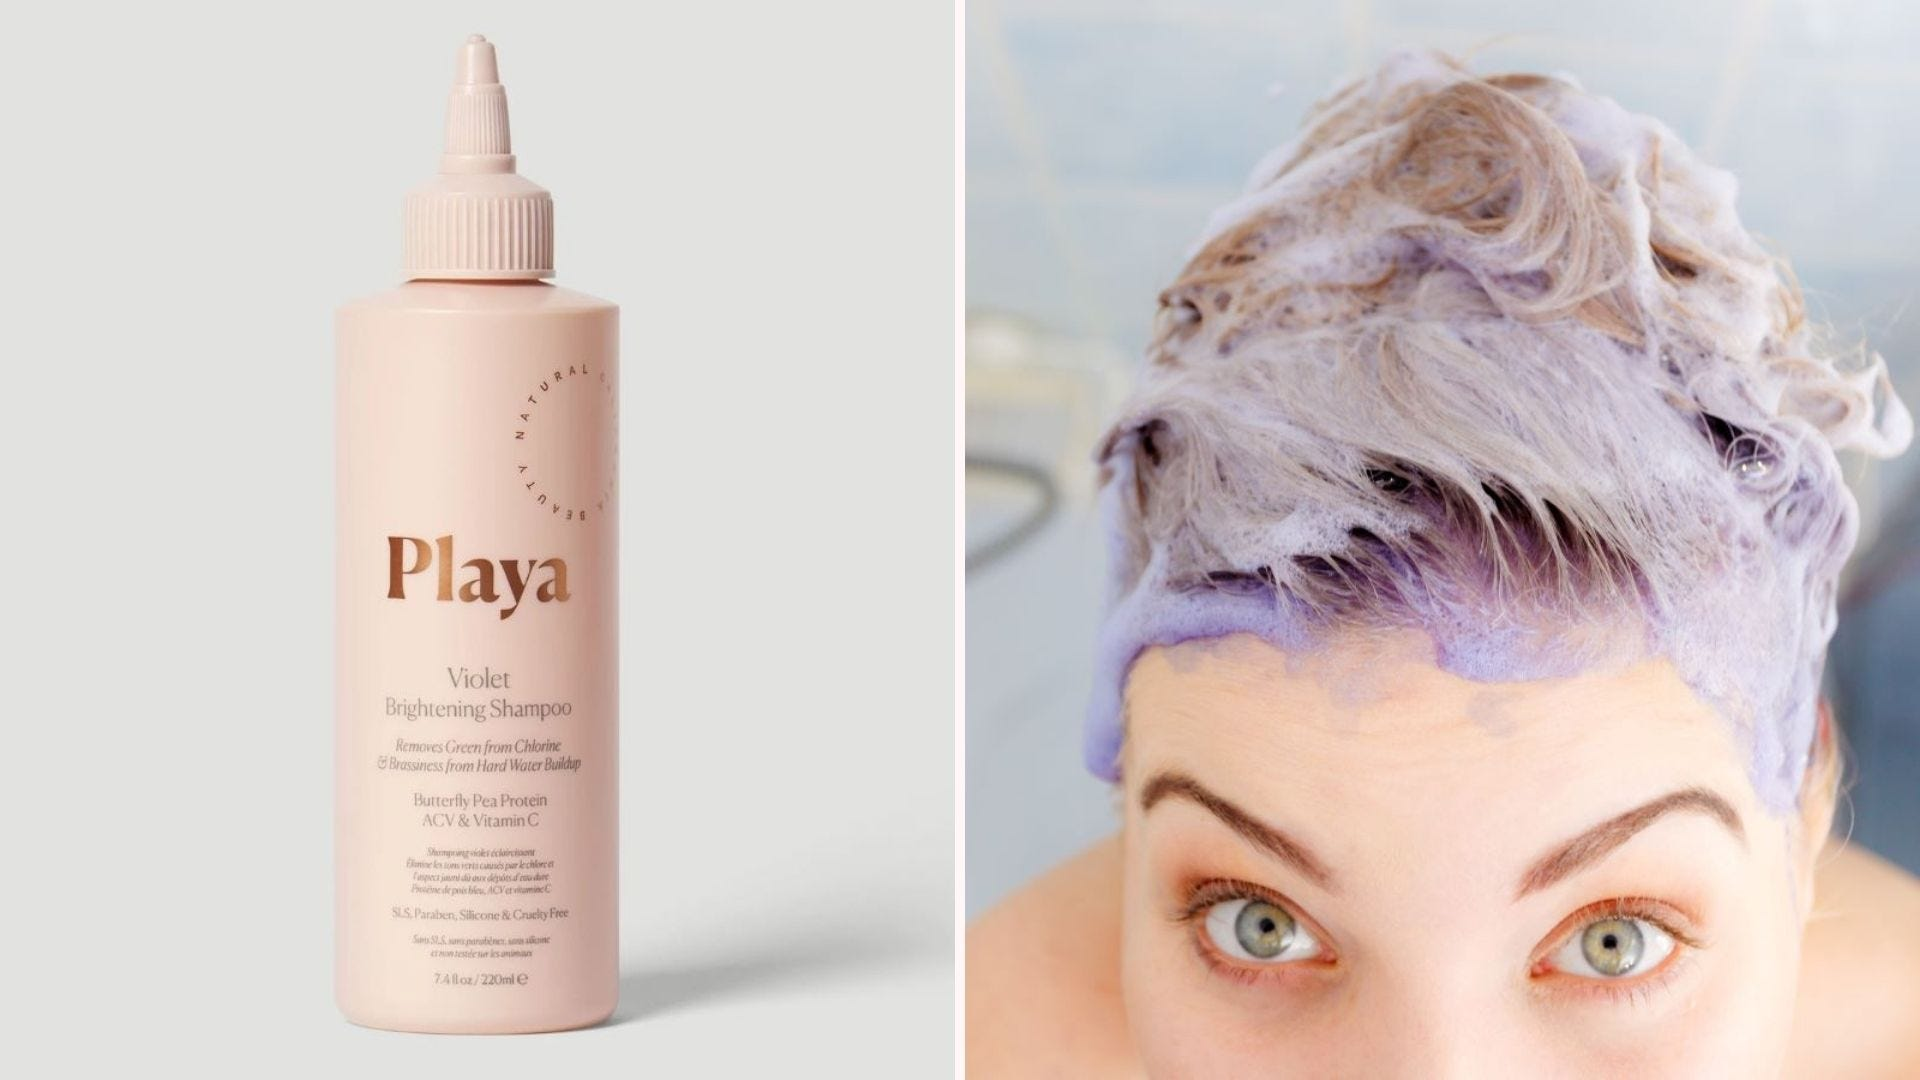 A bottle of Playa Violet Brightening Shampoo and a woman in the shower with a lather of purple shampoo on her head.